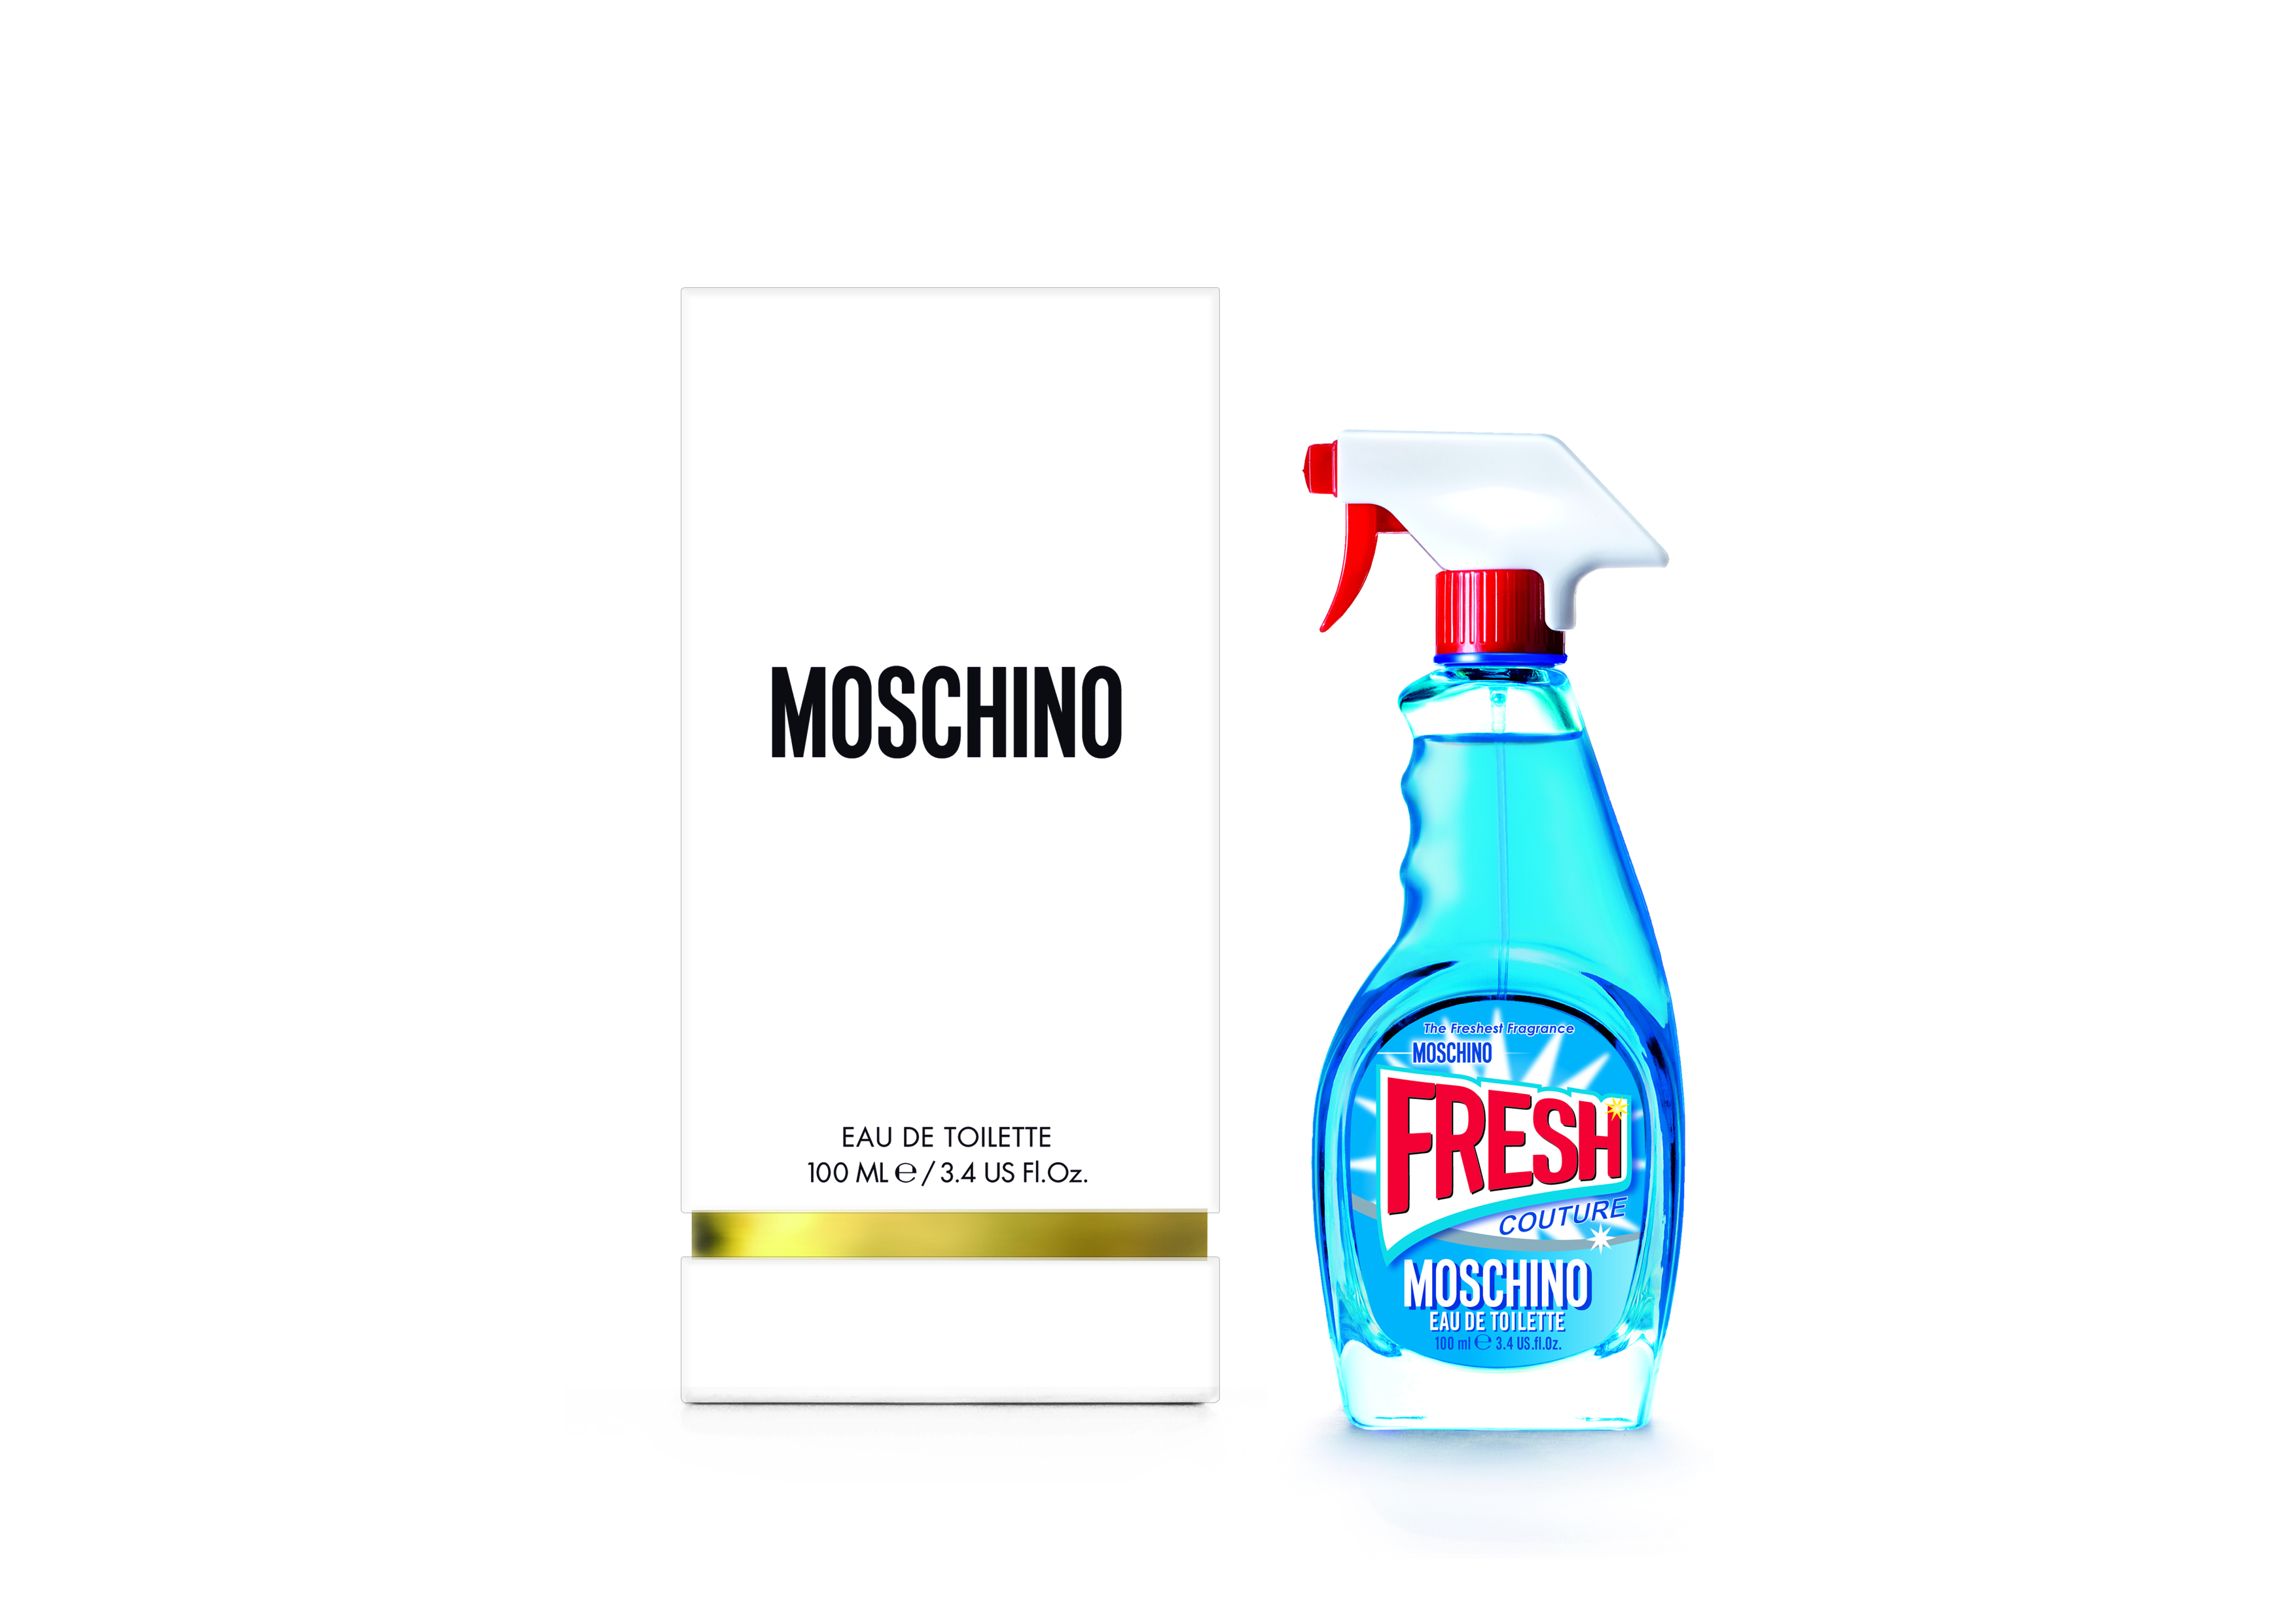 For Moschino Fresh Scott Couture Jeremy Launches 6fyYb7g